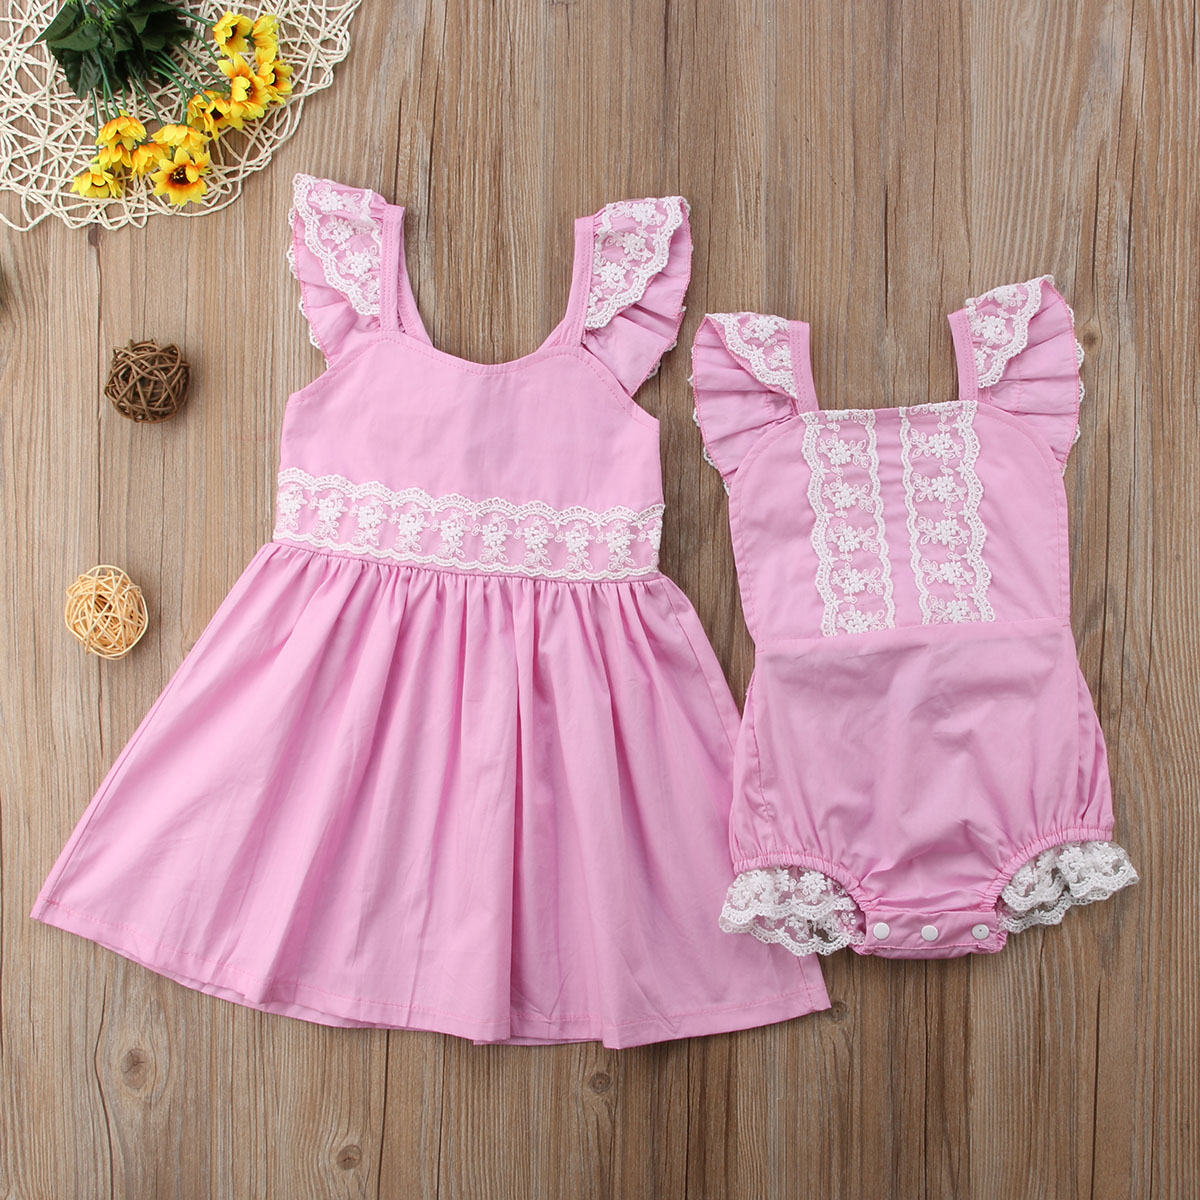 summer kid baby girls sister matching lace clothes romper